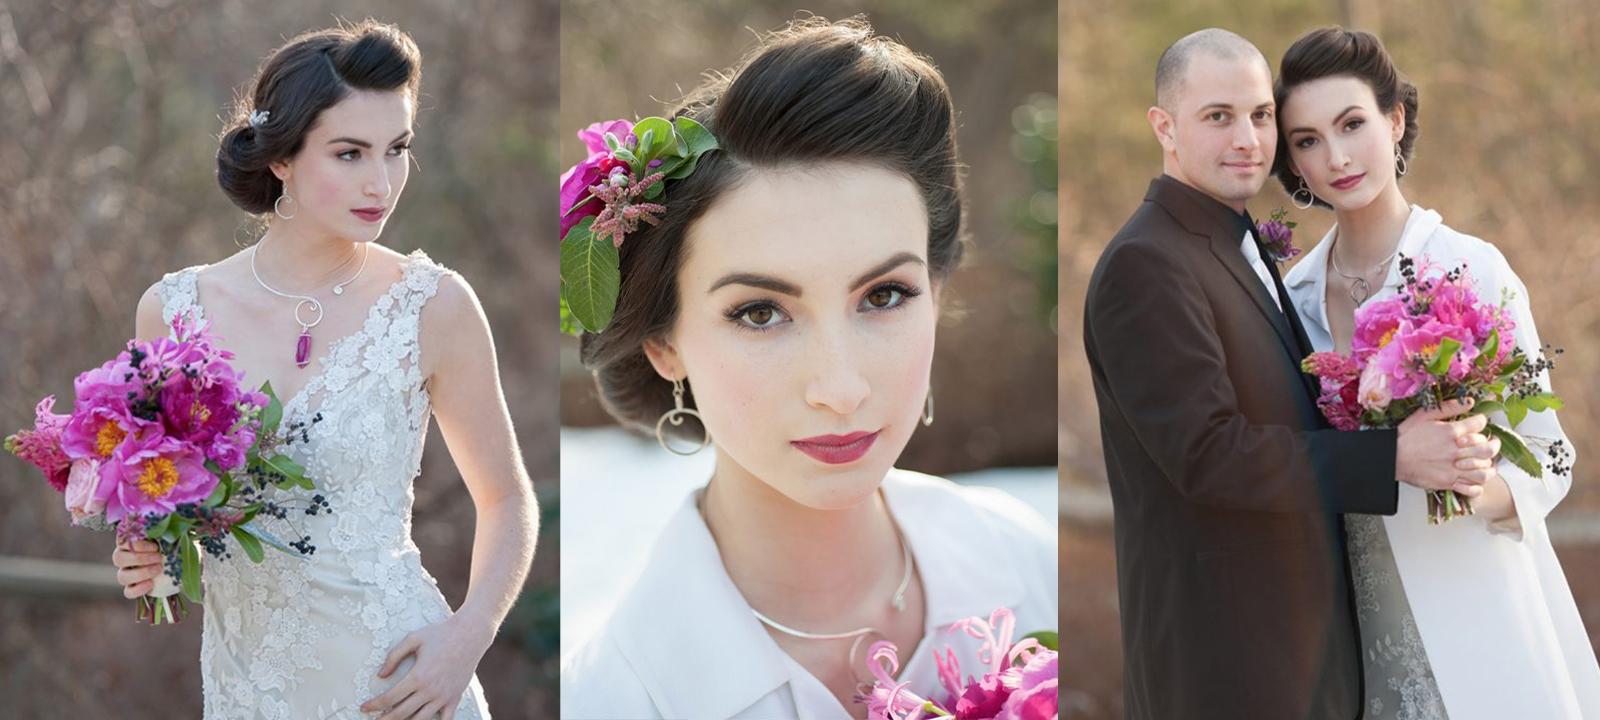 Lynda Williams Beauty Wedding Hair and Makeup Rhode Island